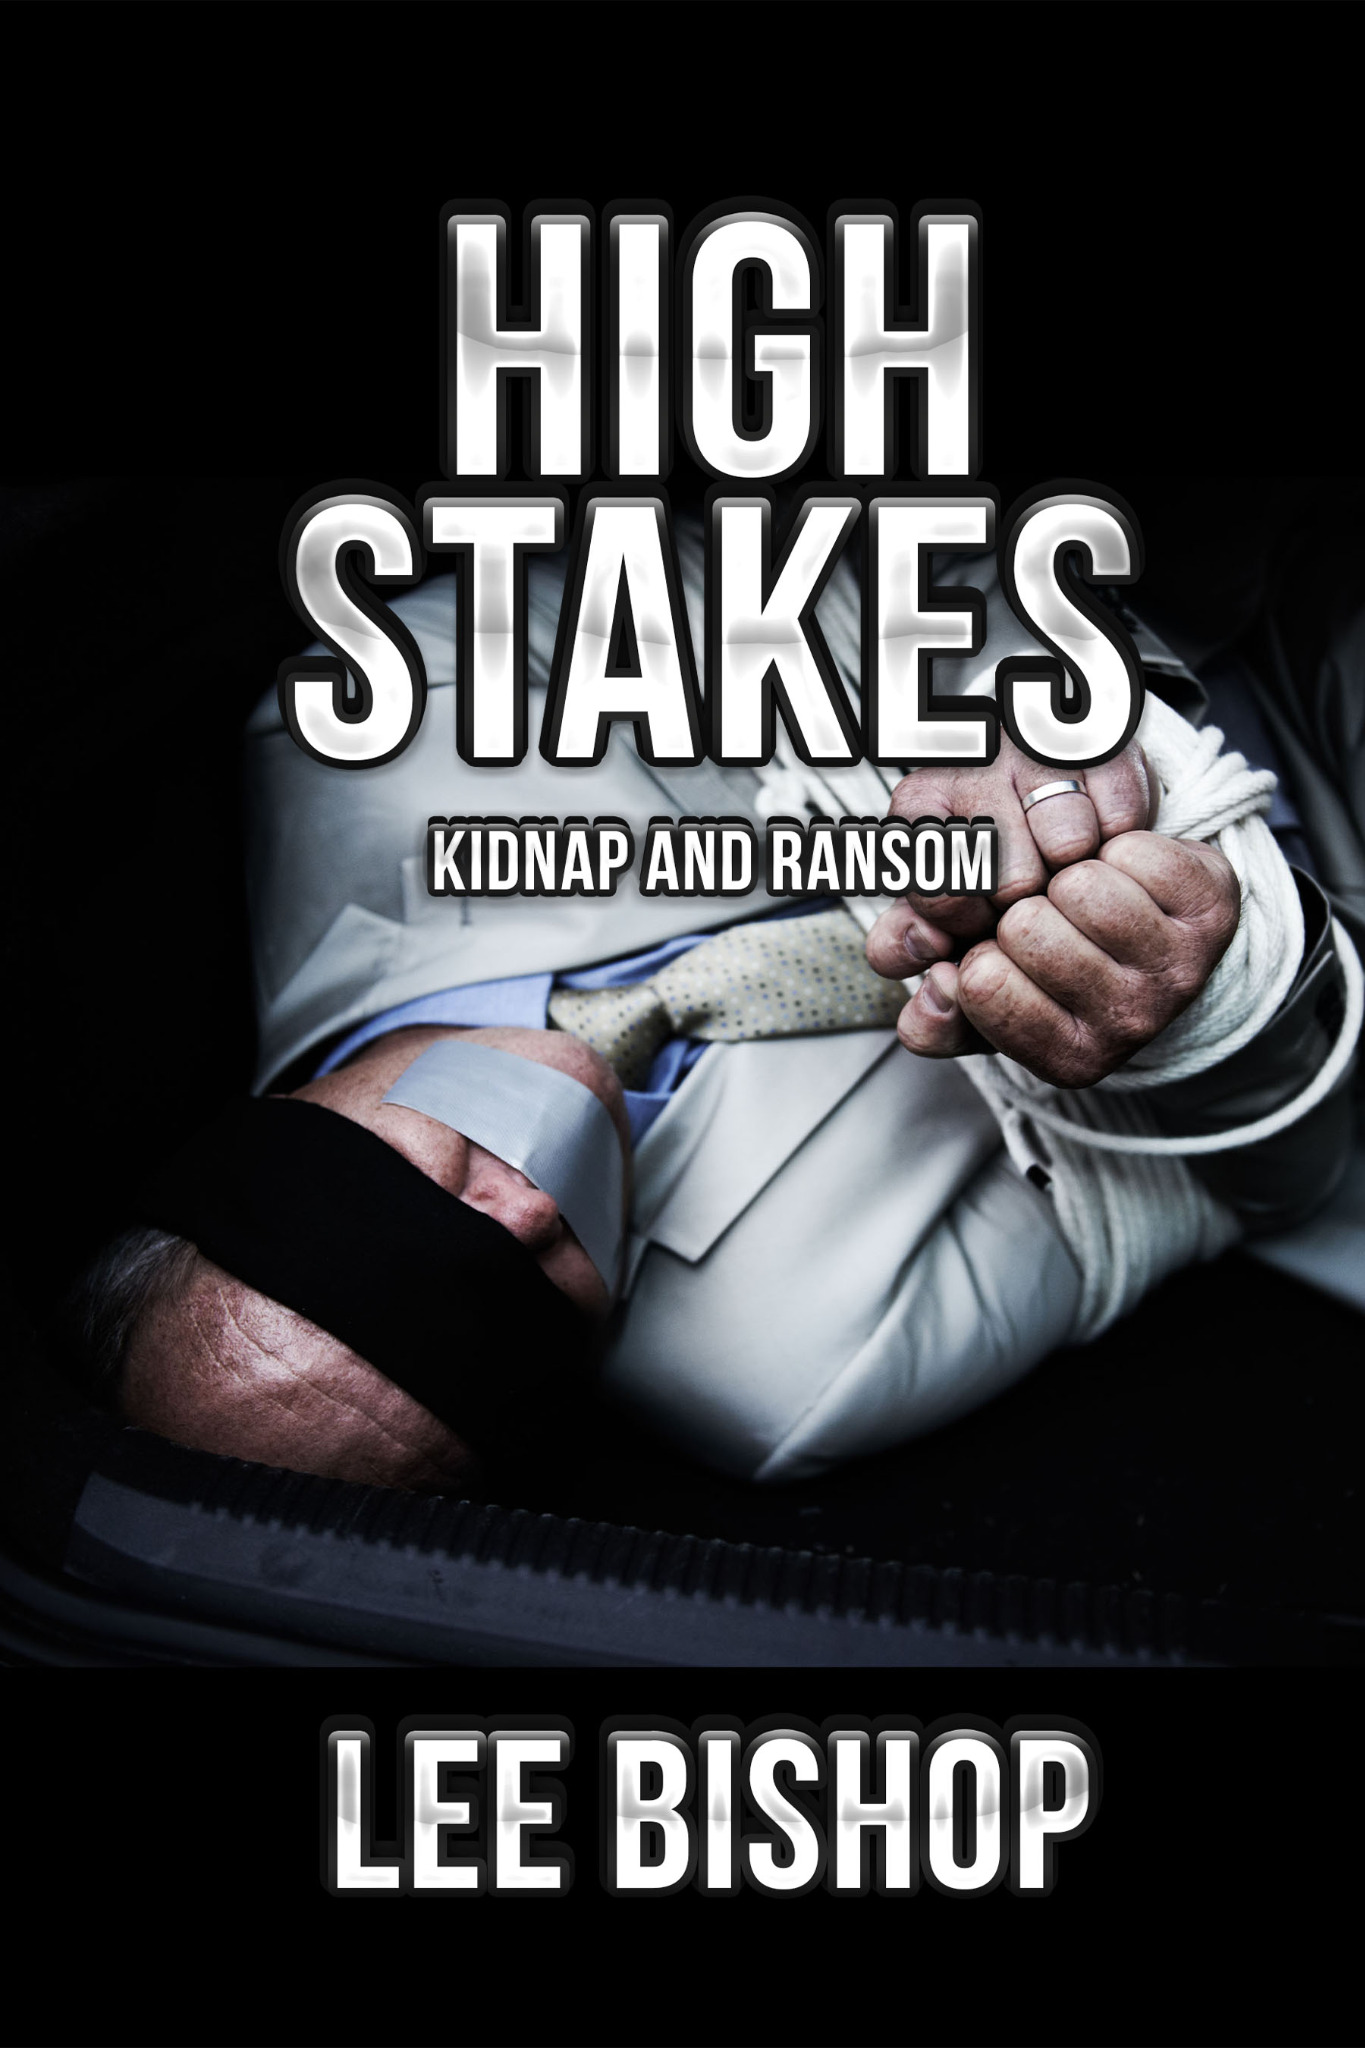 High Stakes - Kidnap and Ransom